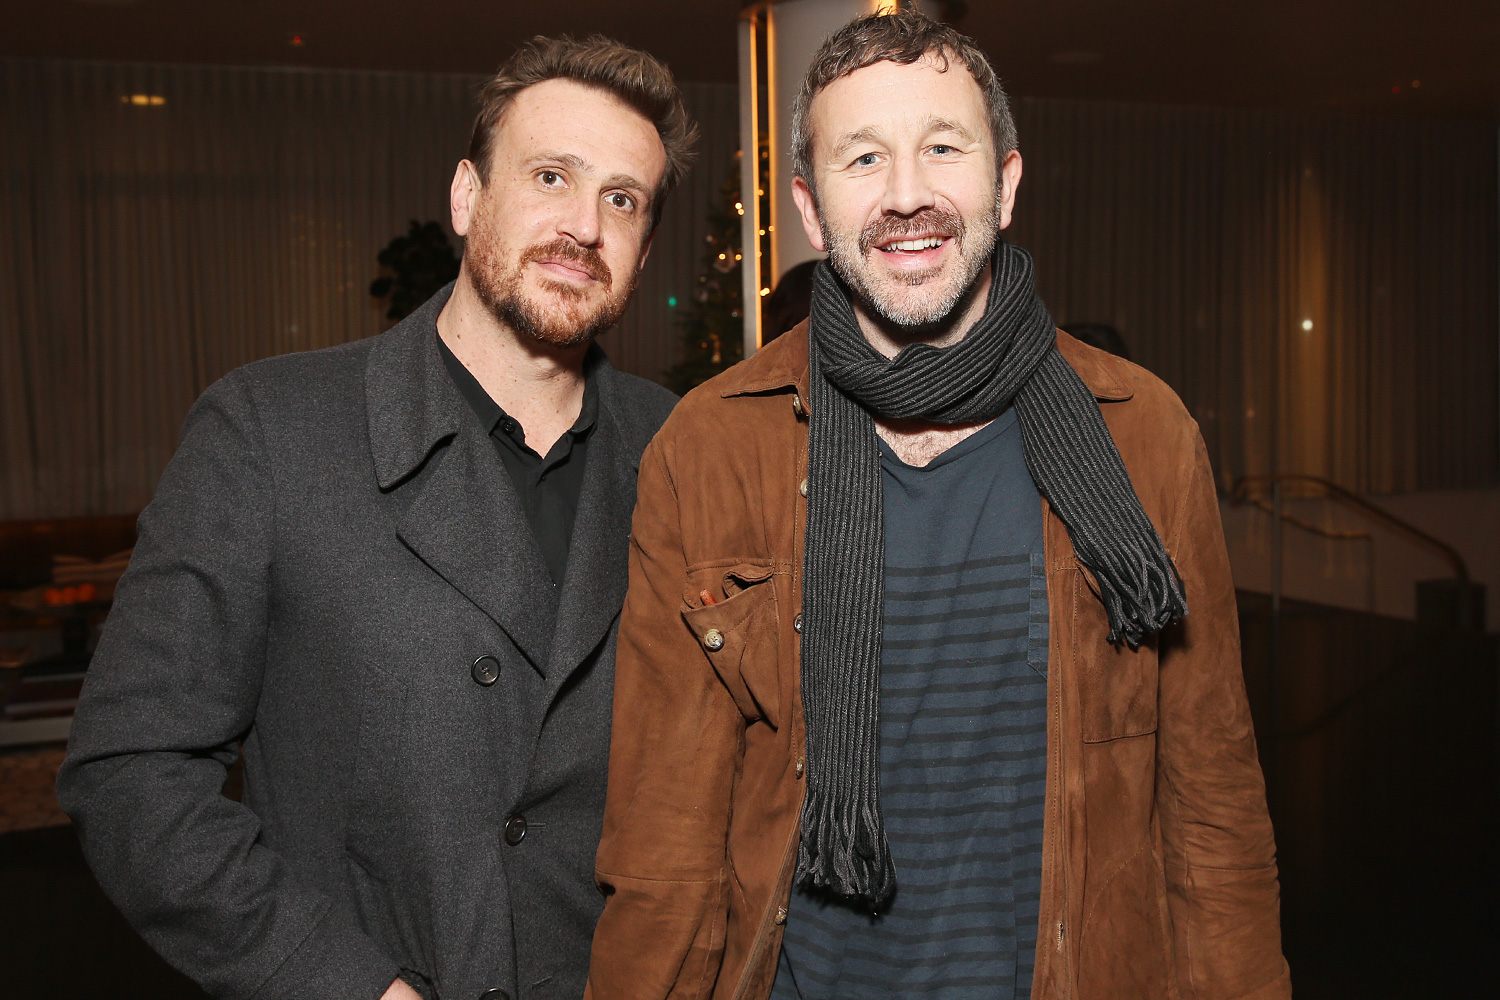 """Jason Segel and Chris O'Dowd attend the """"Dispatches from Elsewhere"""" - Tastemaker event on December 12, 2019 in Los Angeles, California"""